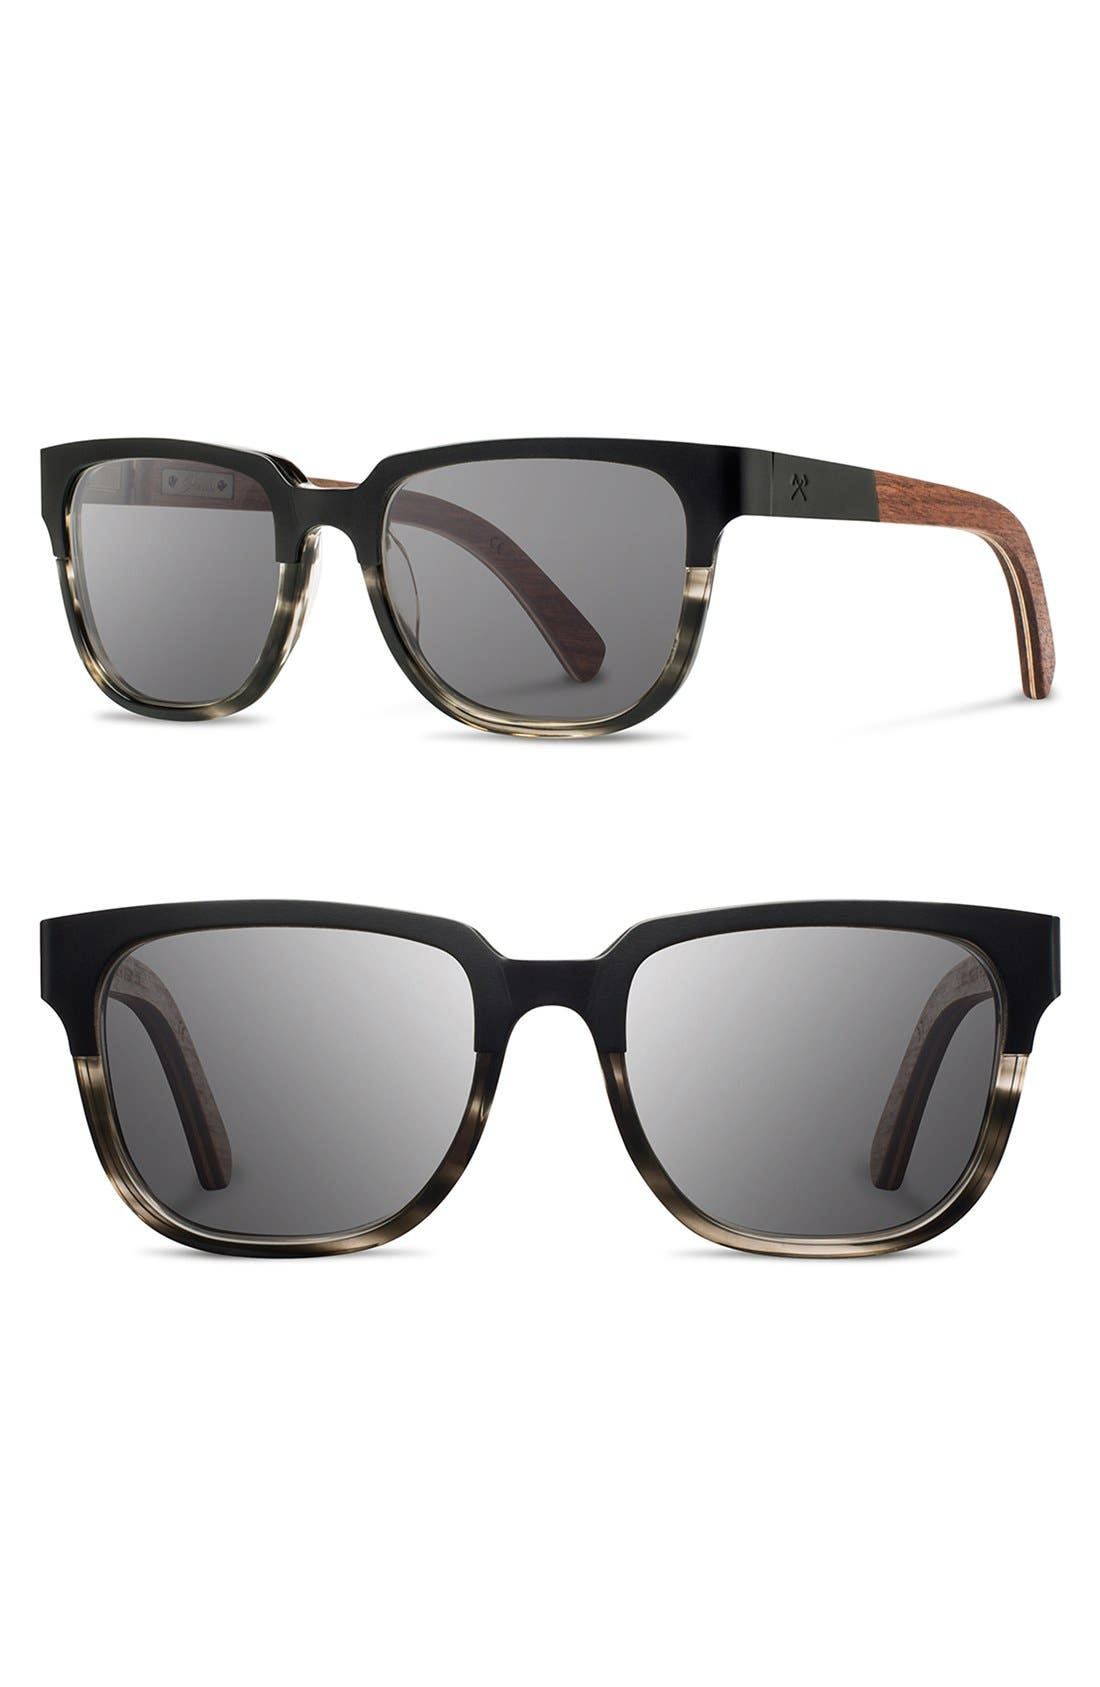 Alternate Image 1 Selected - Shwood 'Prescott' 52mm Titanium & Wood Sunglasses